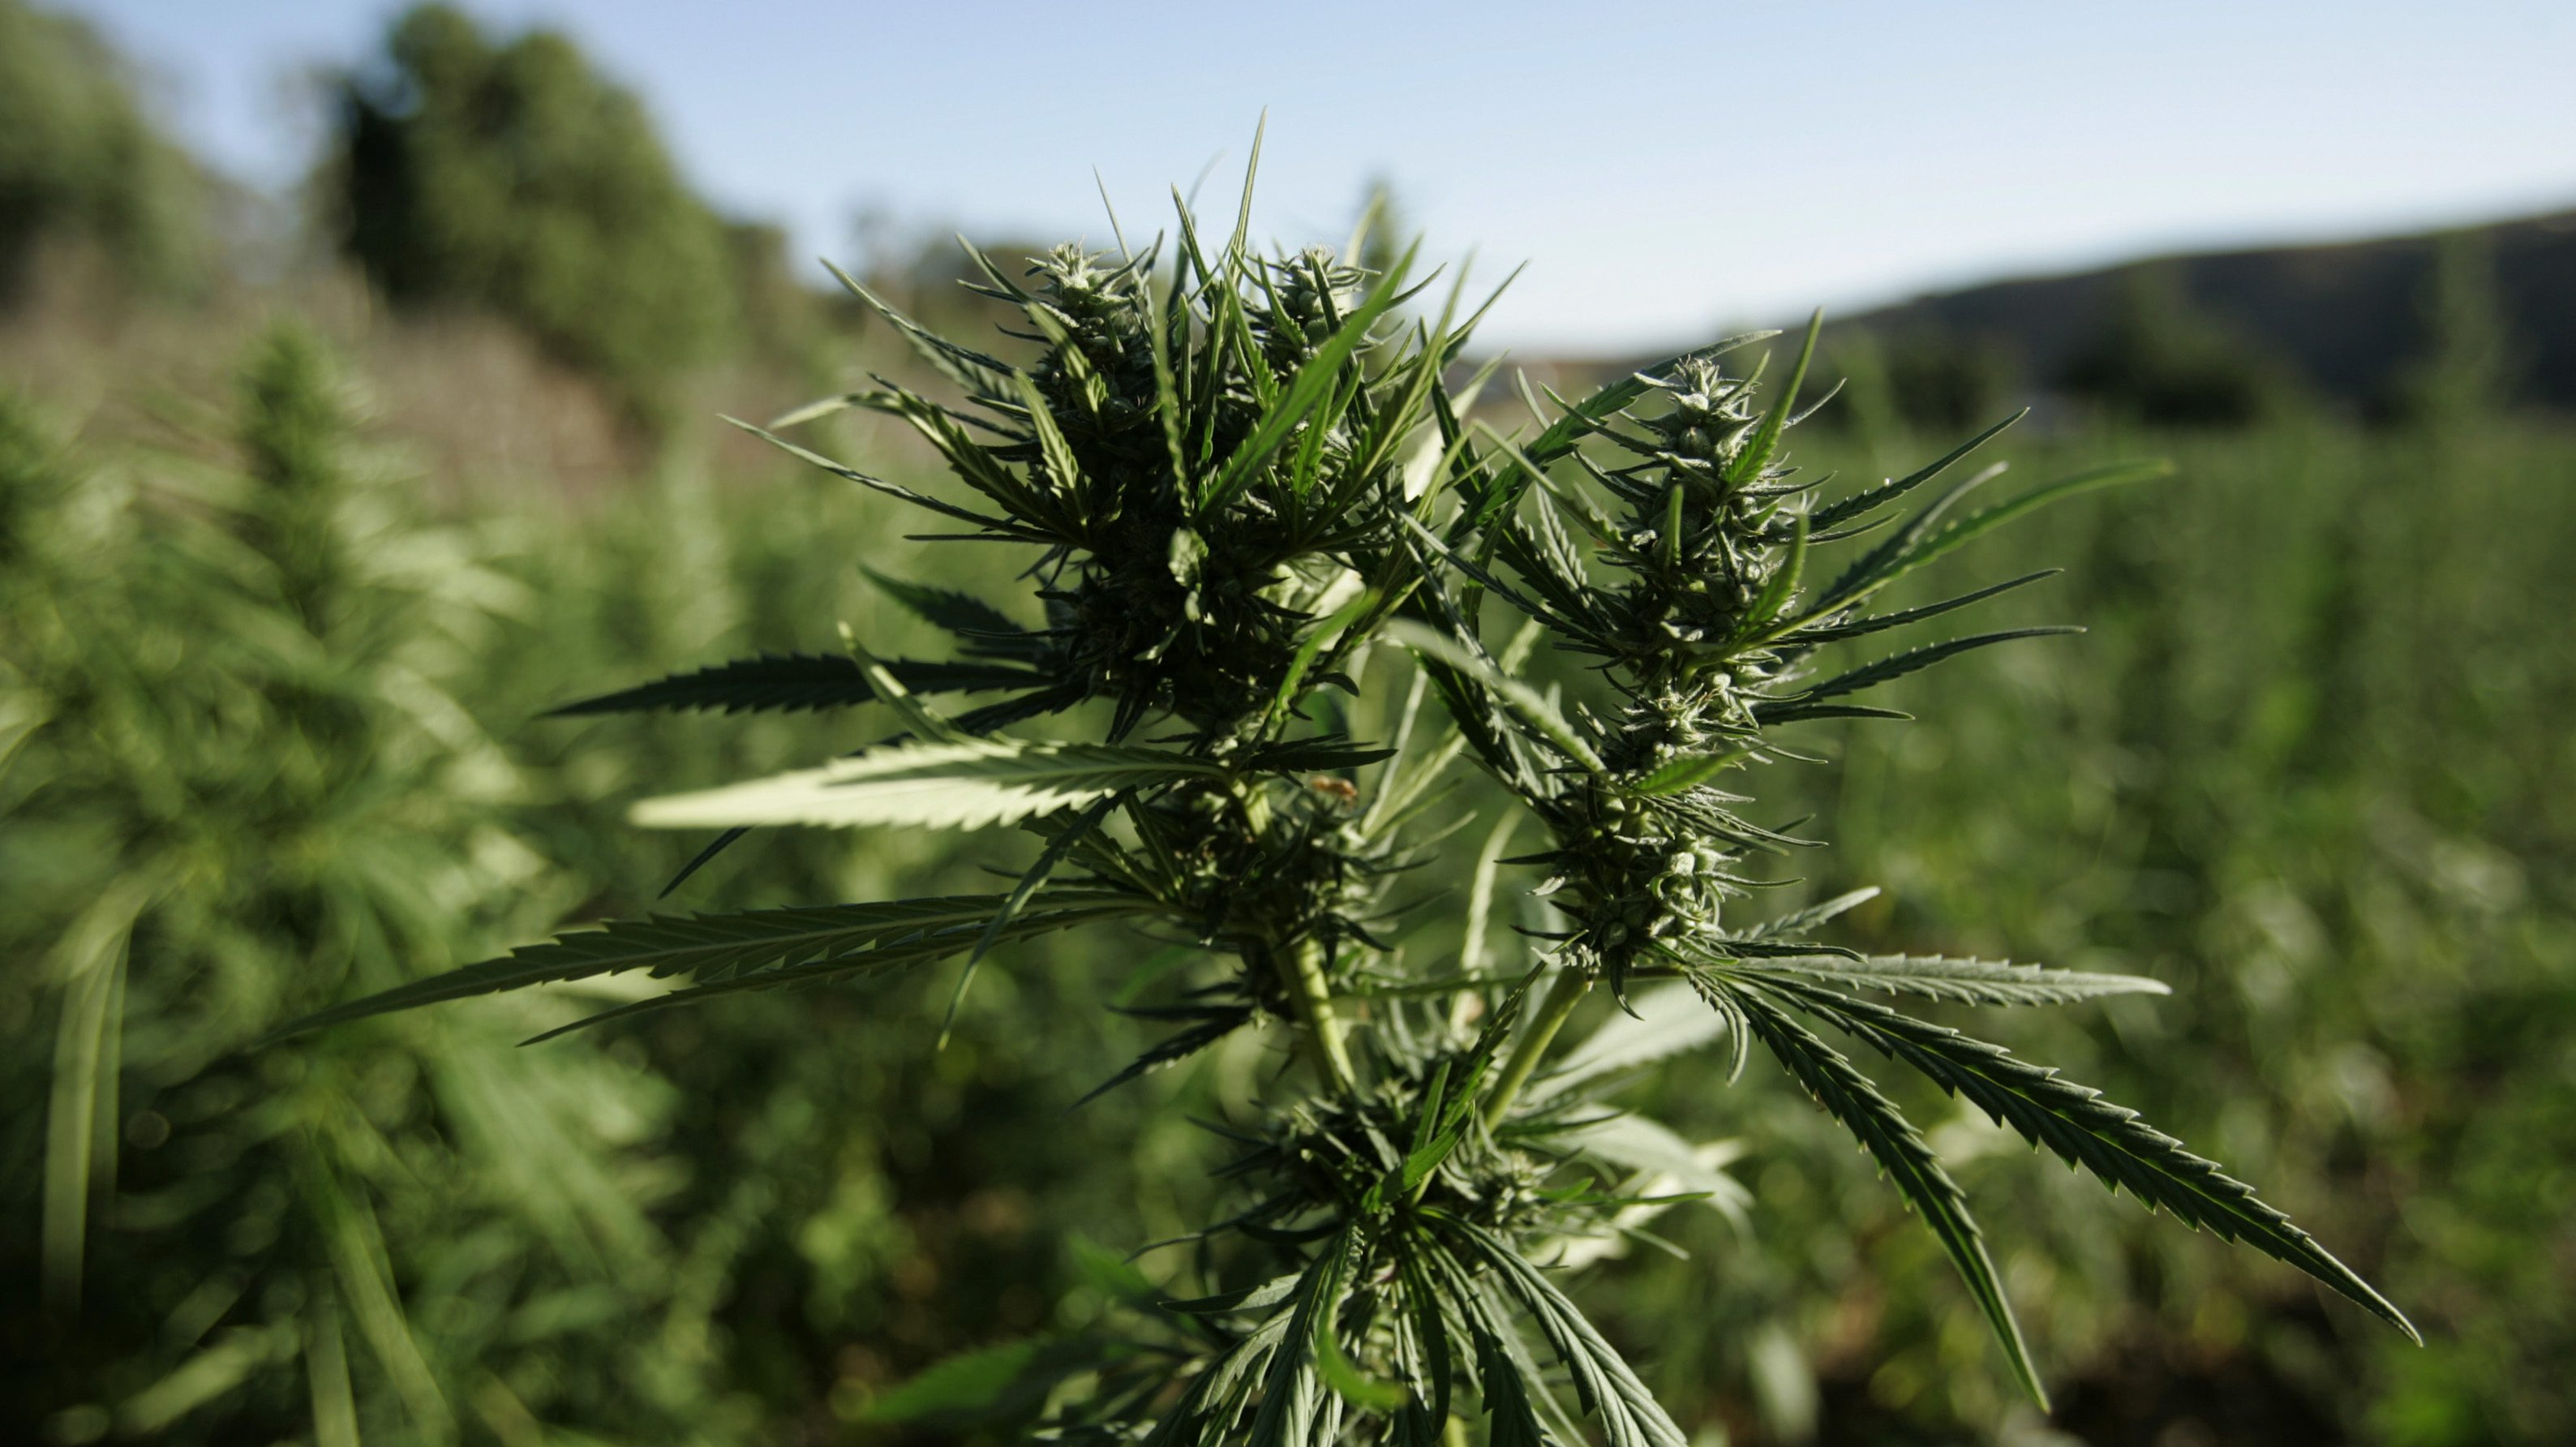 Illegal marijuana growers are poisoning national forests with banned pesticides